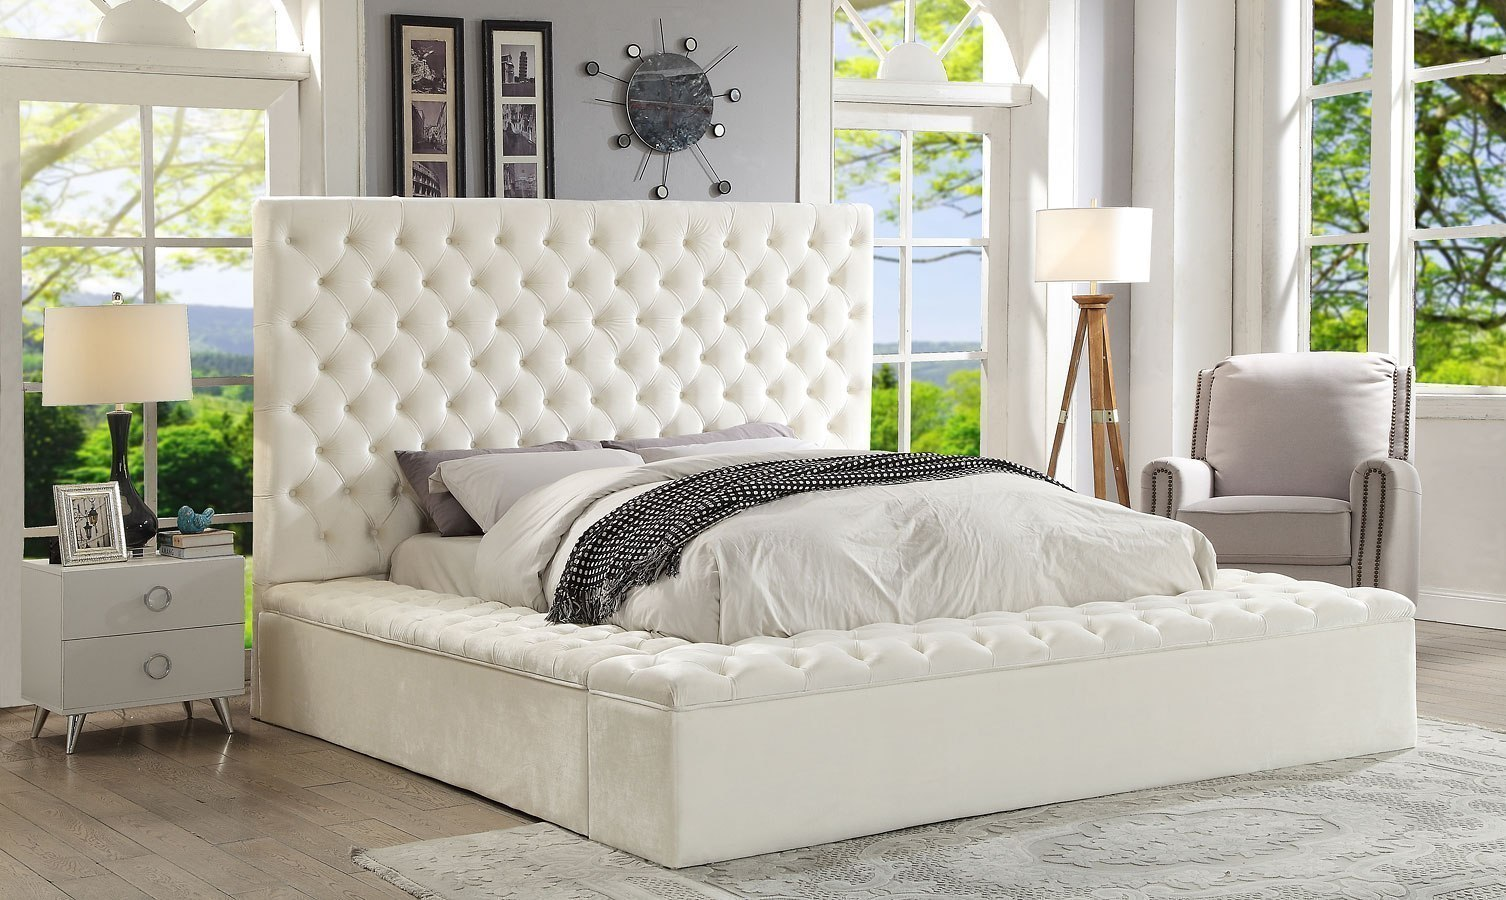 white tufted king bed